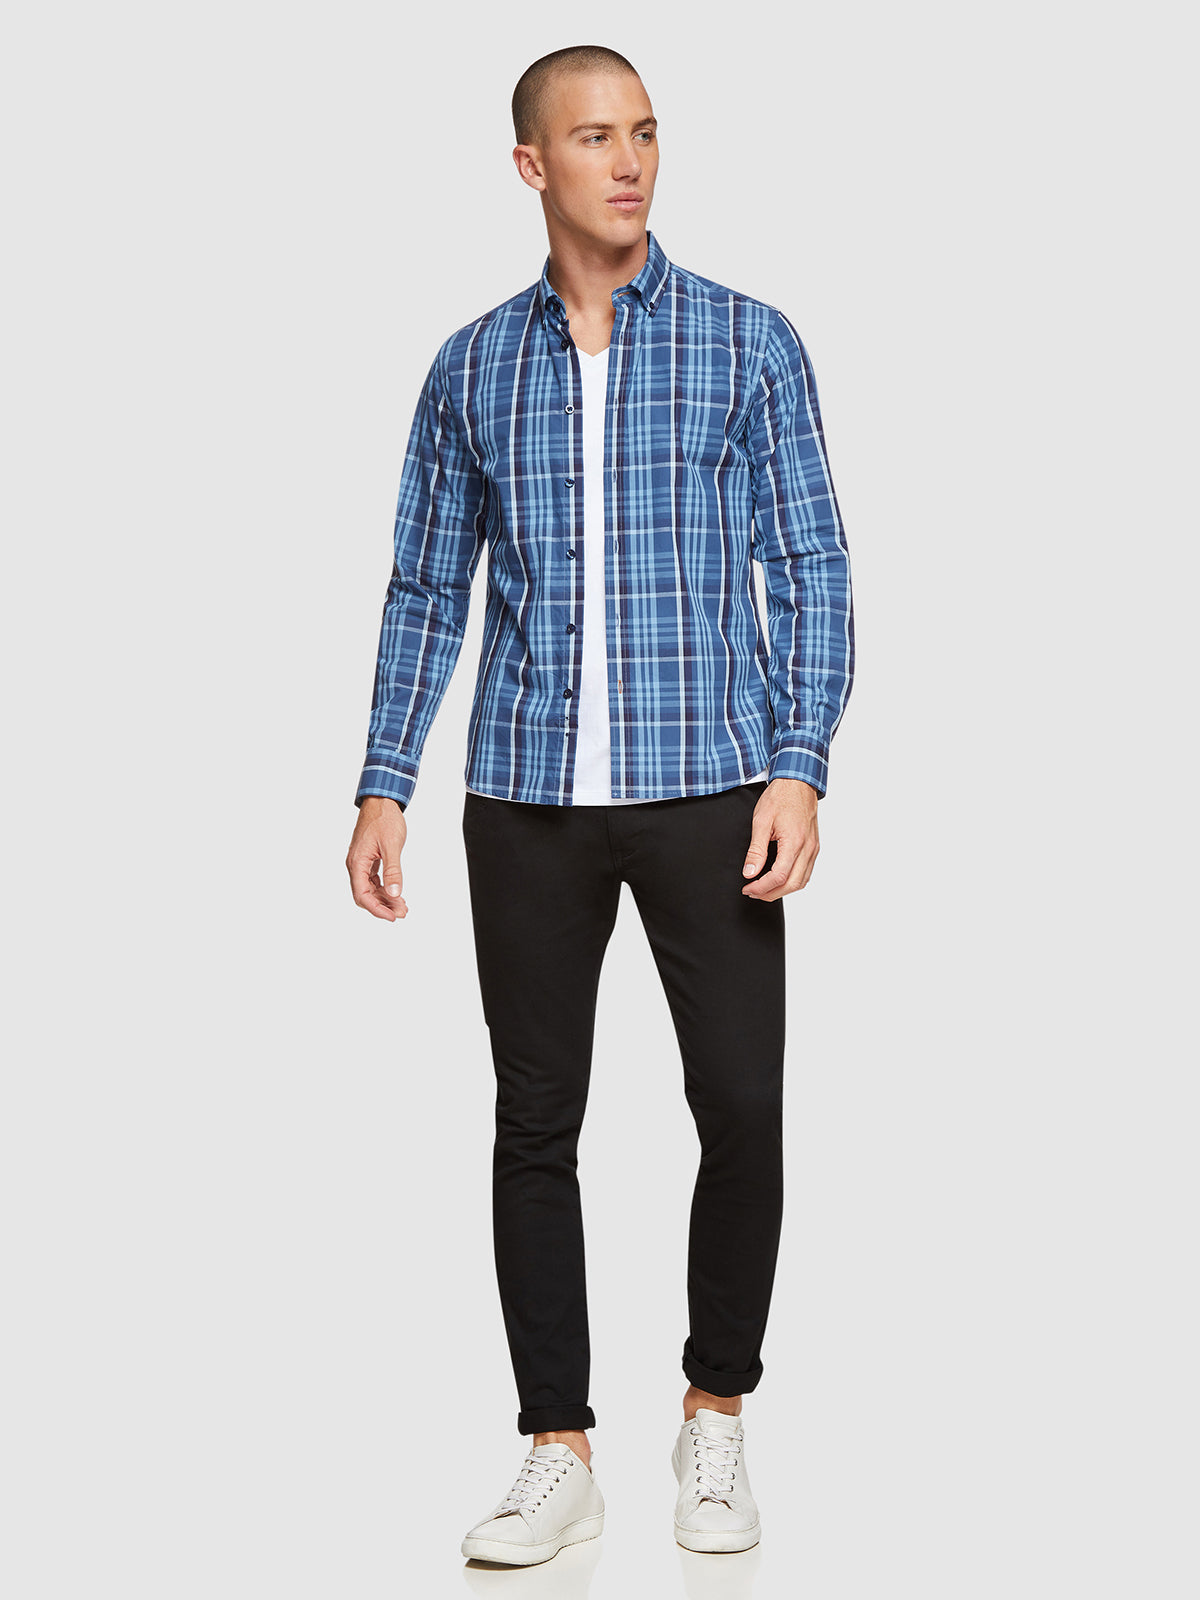 STRATTON CHECKED SHIRT PETROL BLUE